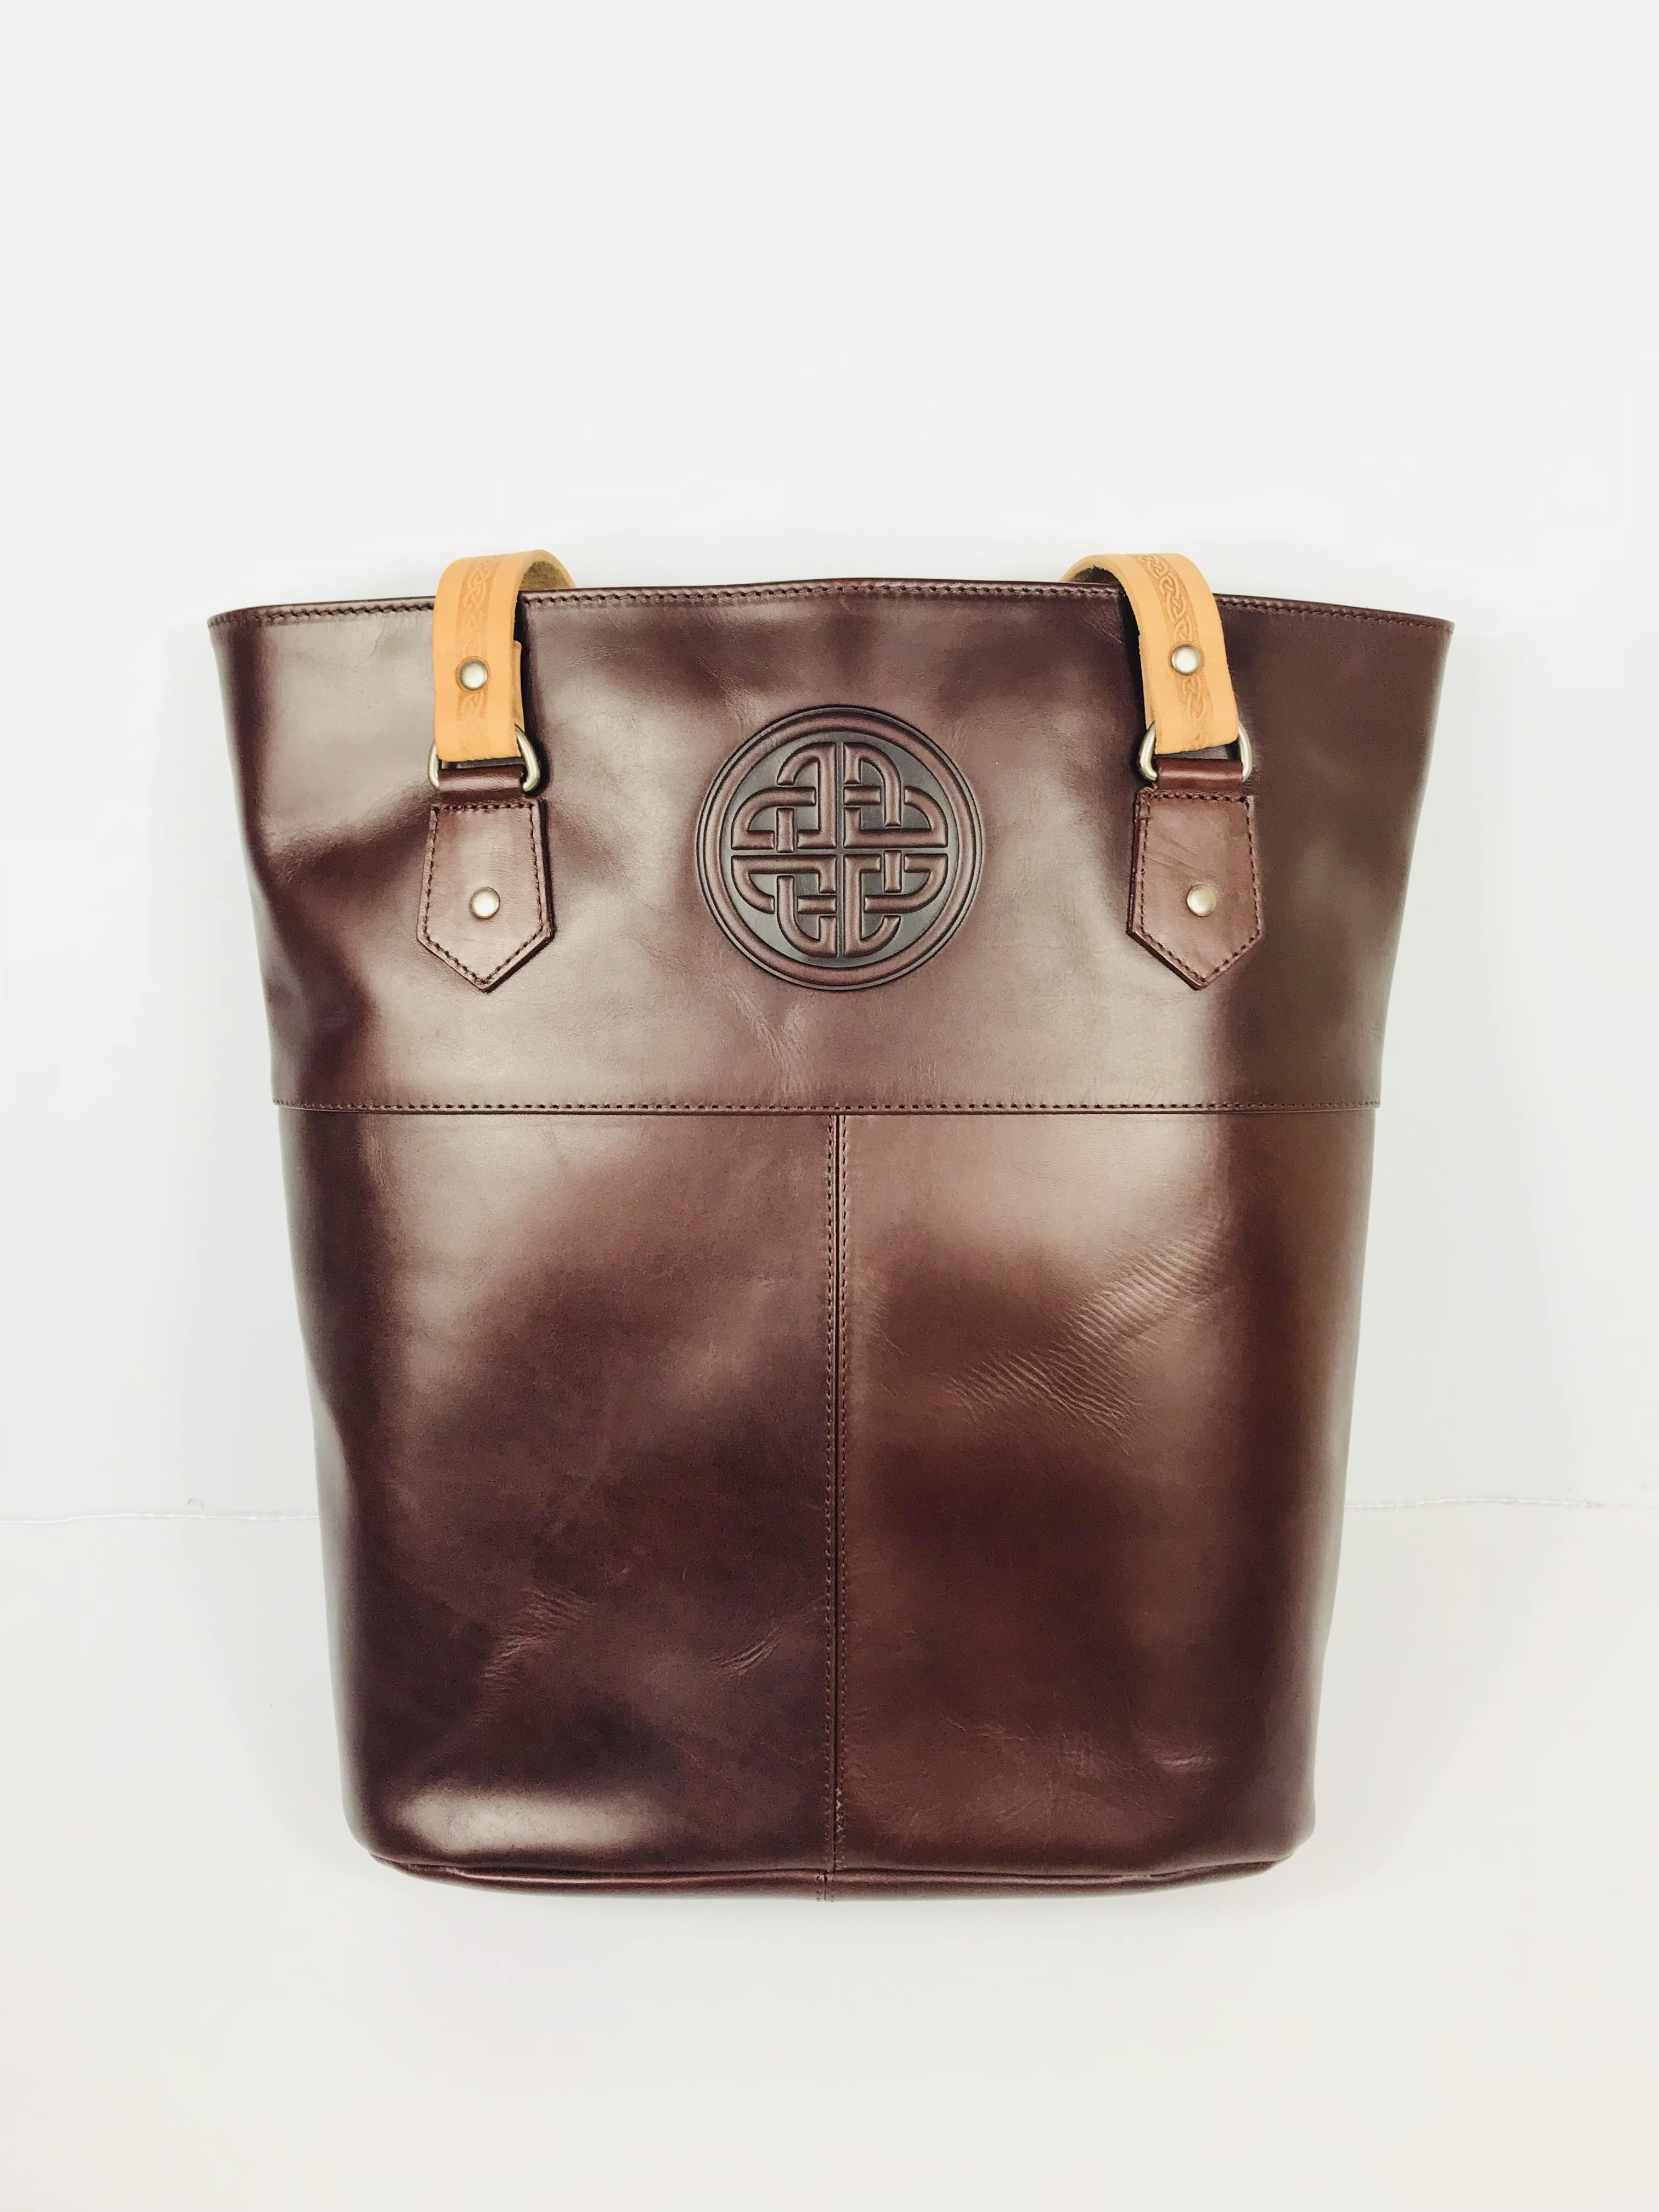 Lee River Brown Leather Tote Bag - Skellig Gift Store - Free Worldwide  Shipping 2e33250a4894b